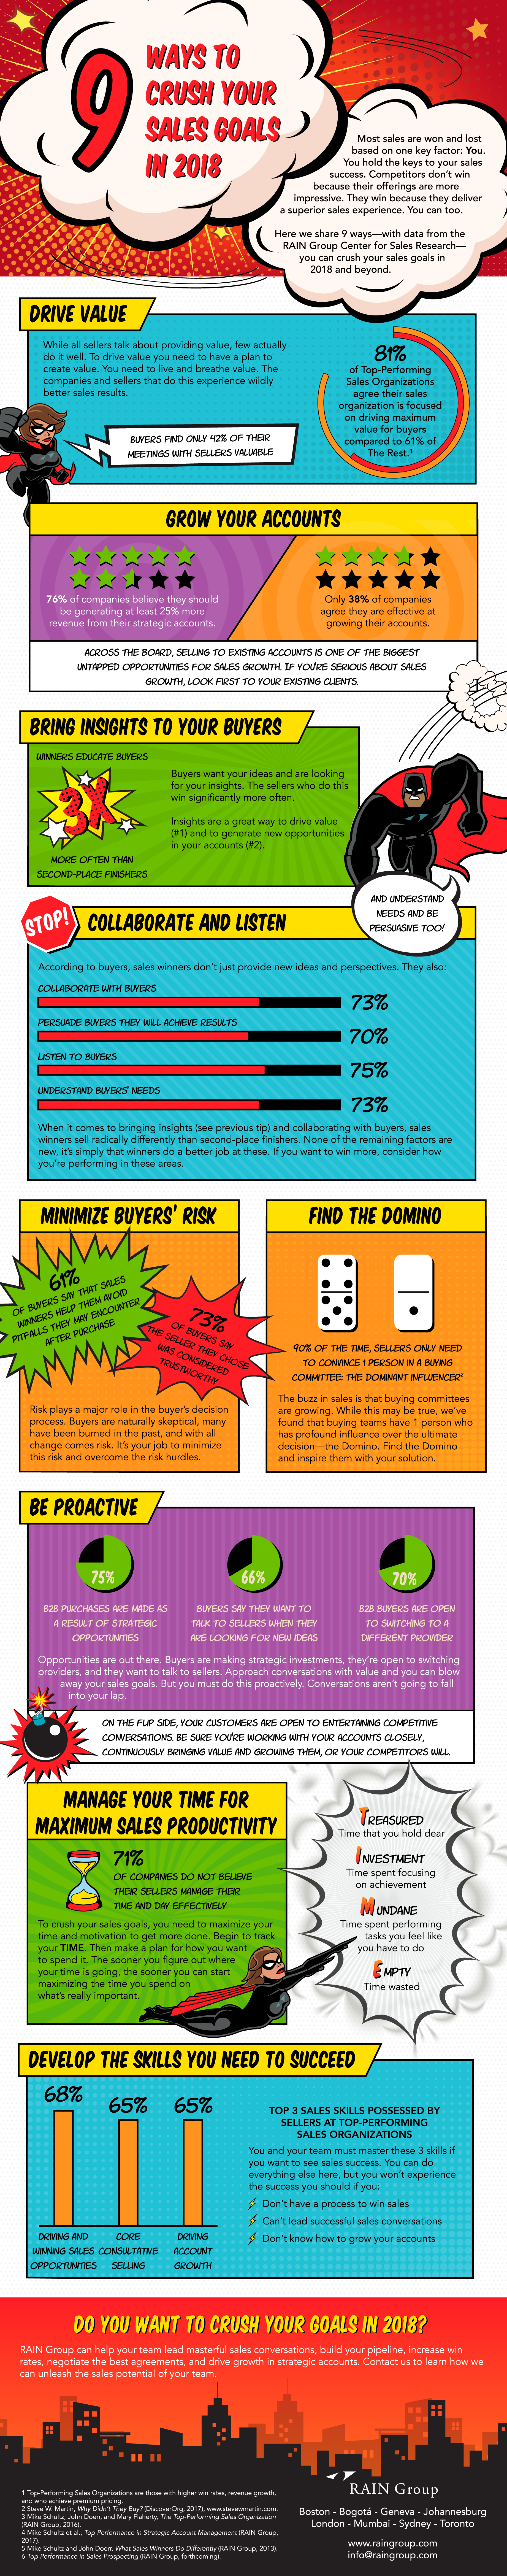 9_Ways_to_Crush_Your_Sales_Goals_Infographic.png